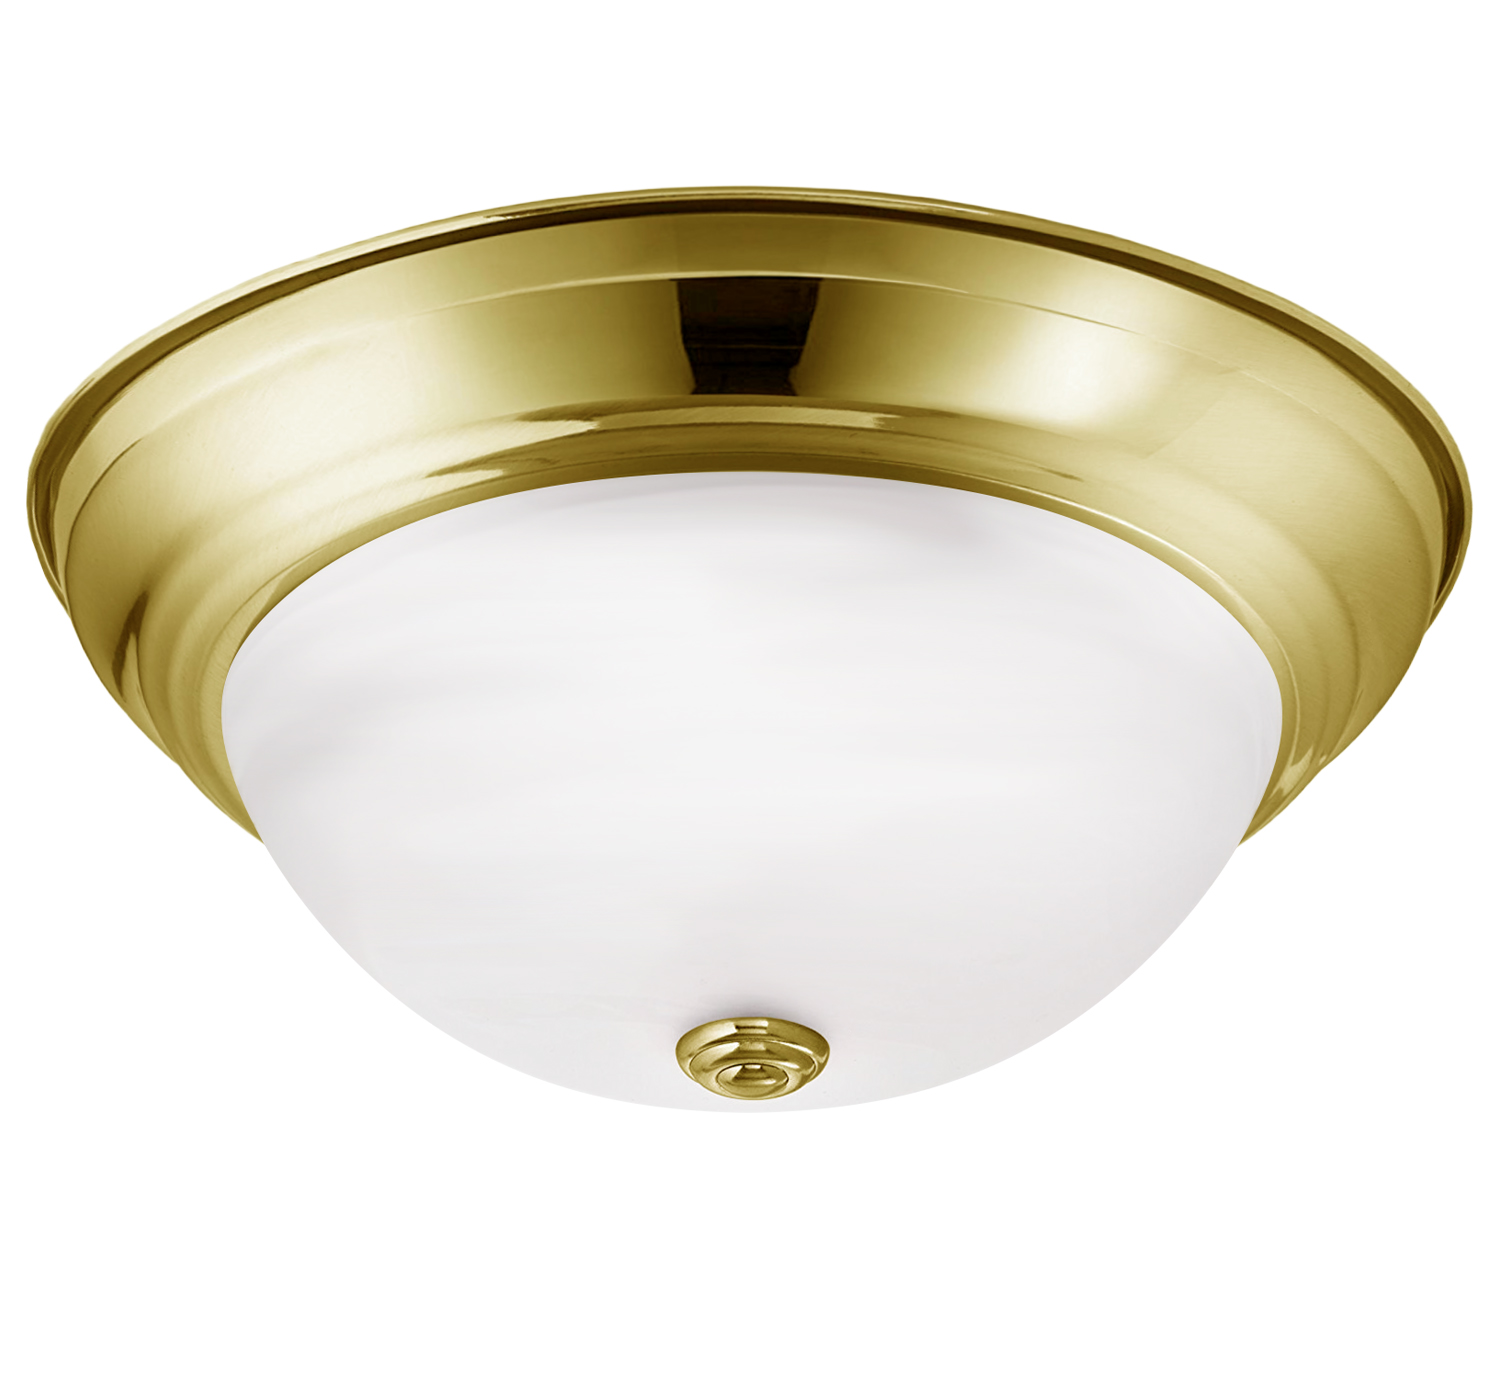 Dome Ceiling Lights: Luxrite LED Dome Ceiling Light, Gold Flush Mount Fixture